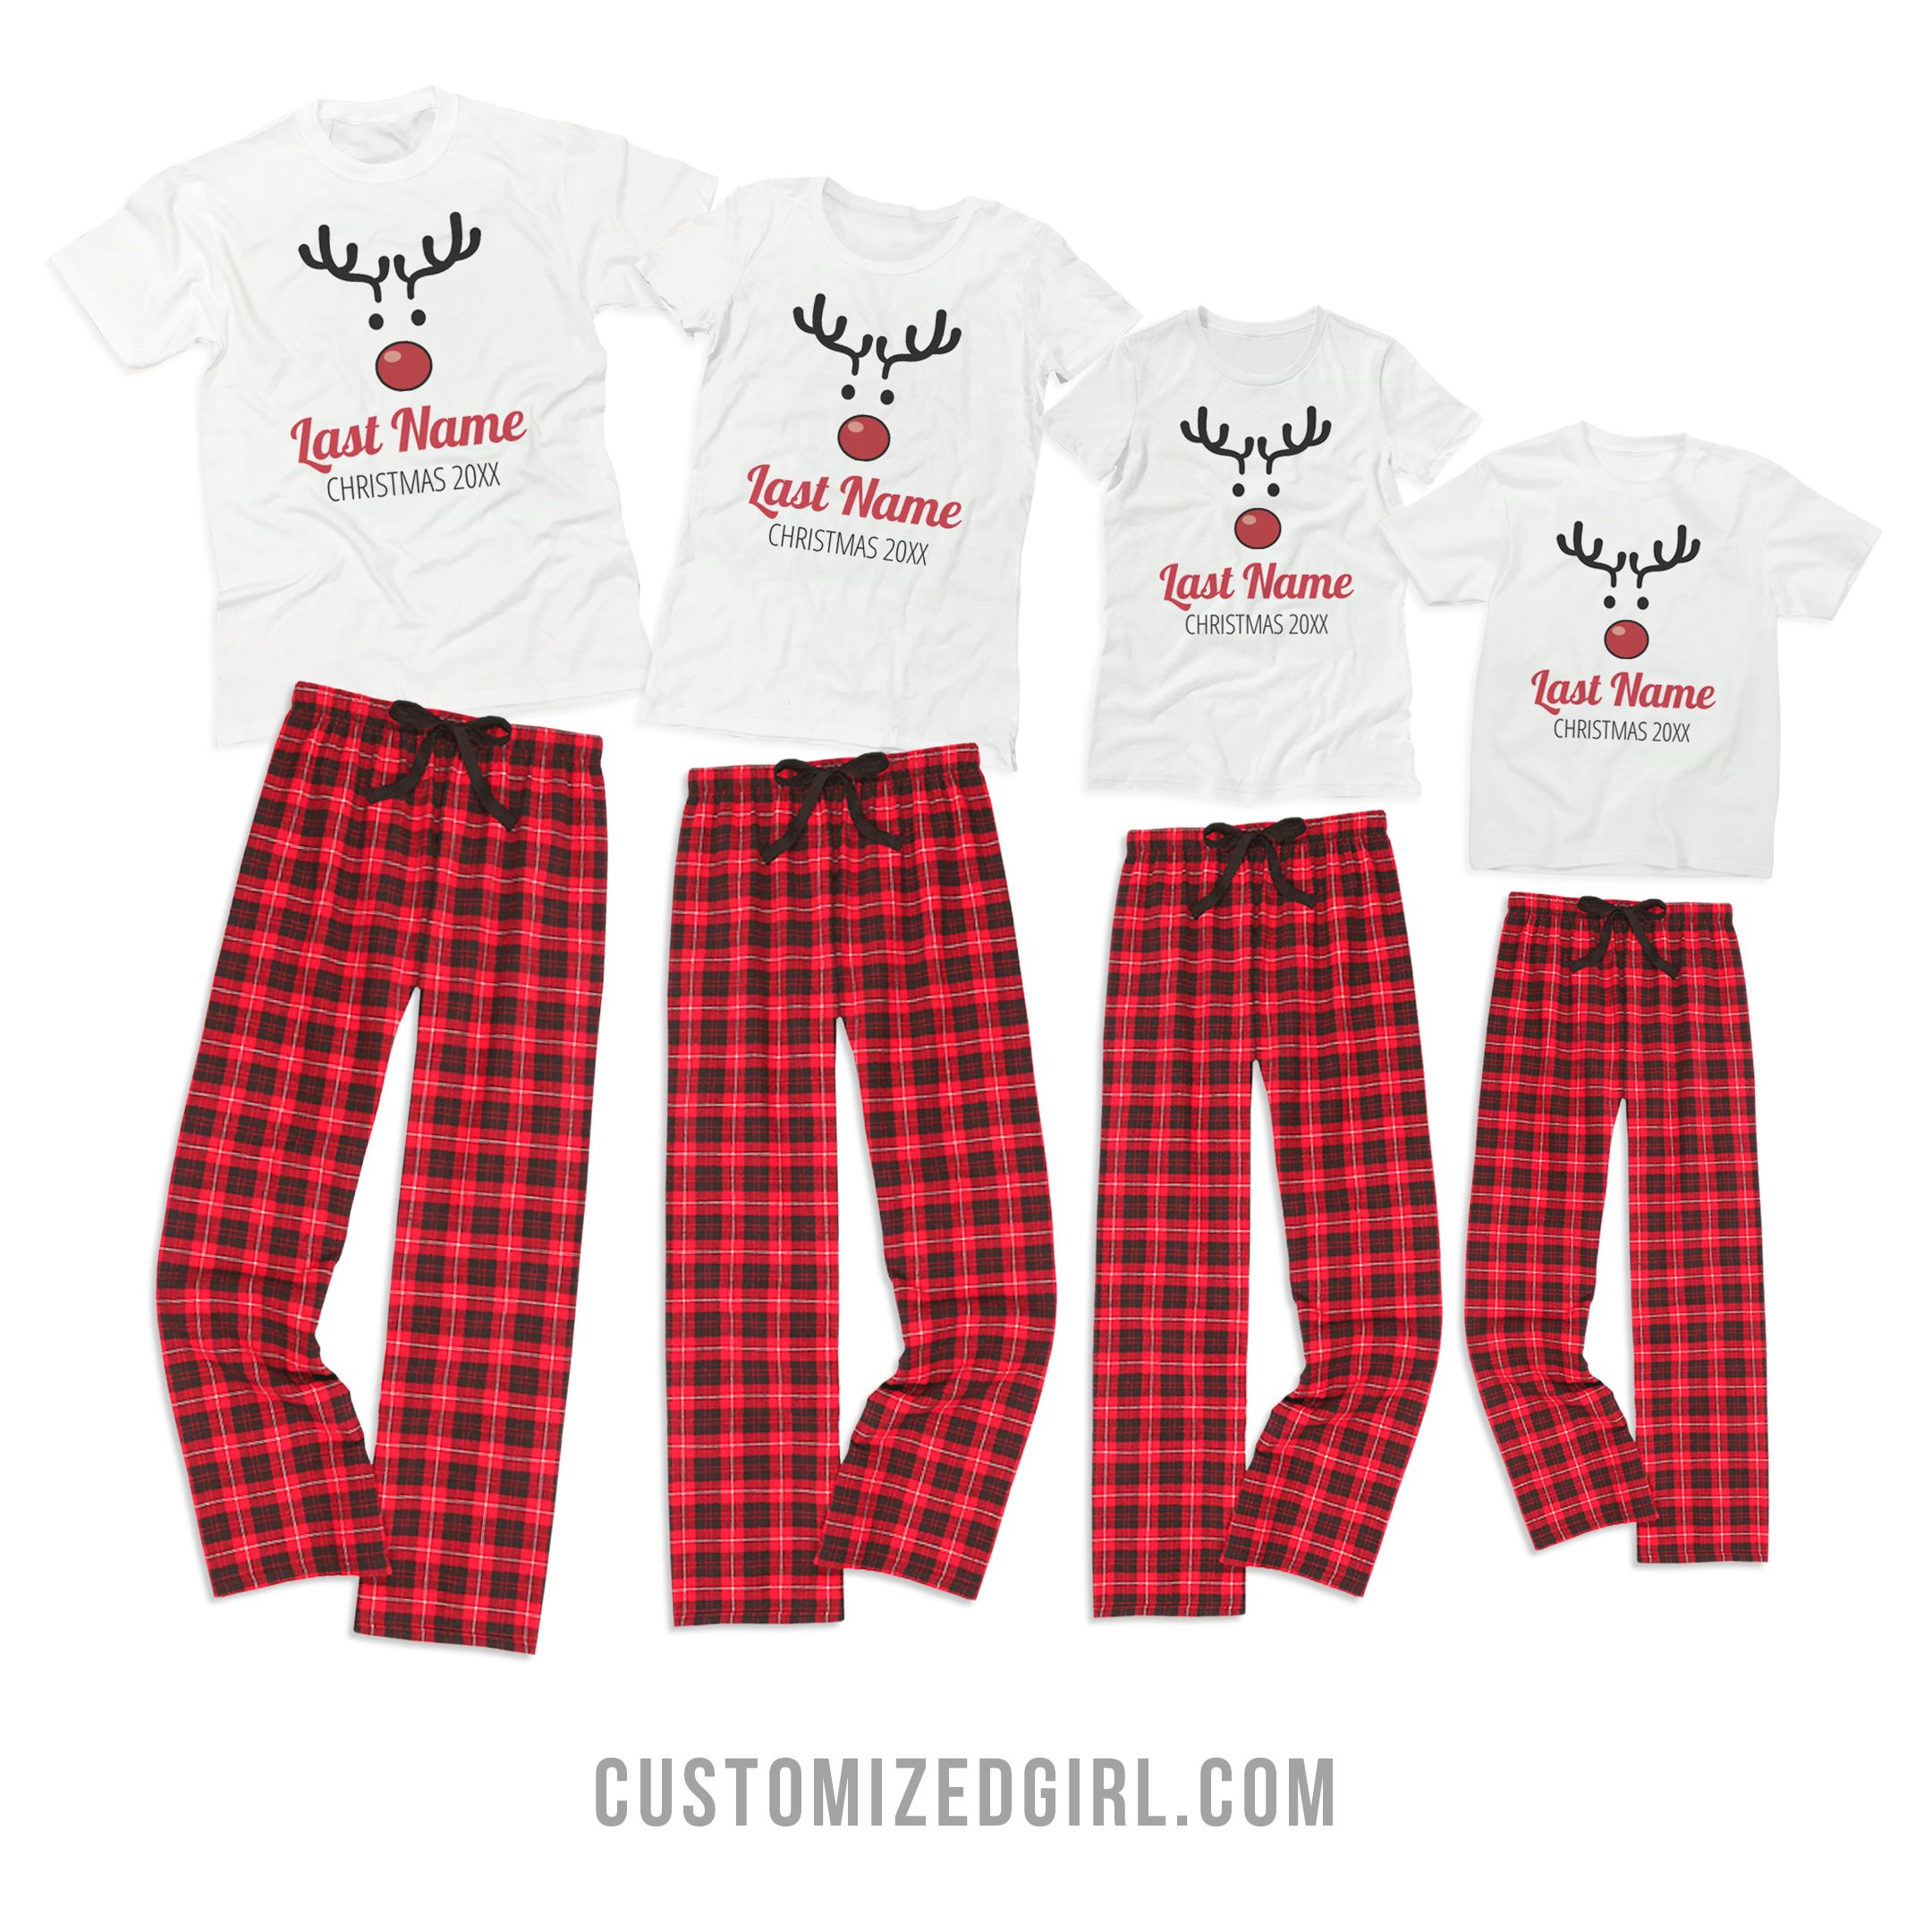 custom kids rudolph family pajamas who doesnt like matching christmas pajamas get your family together and customize these with your last name and the